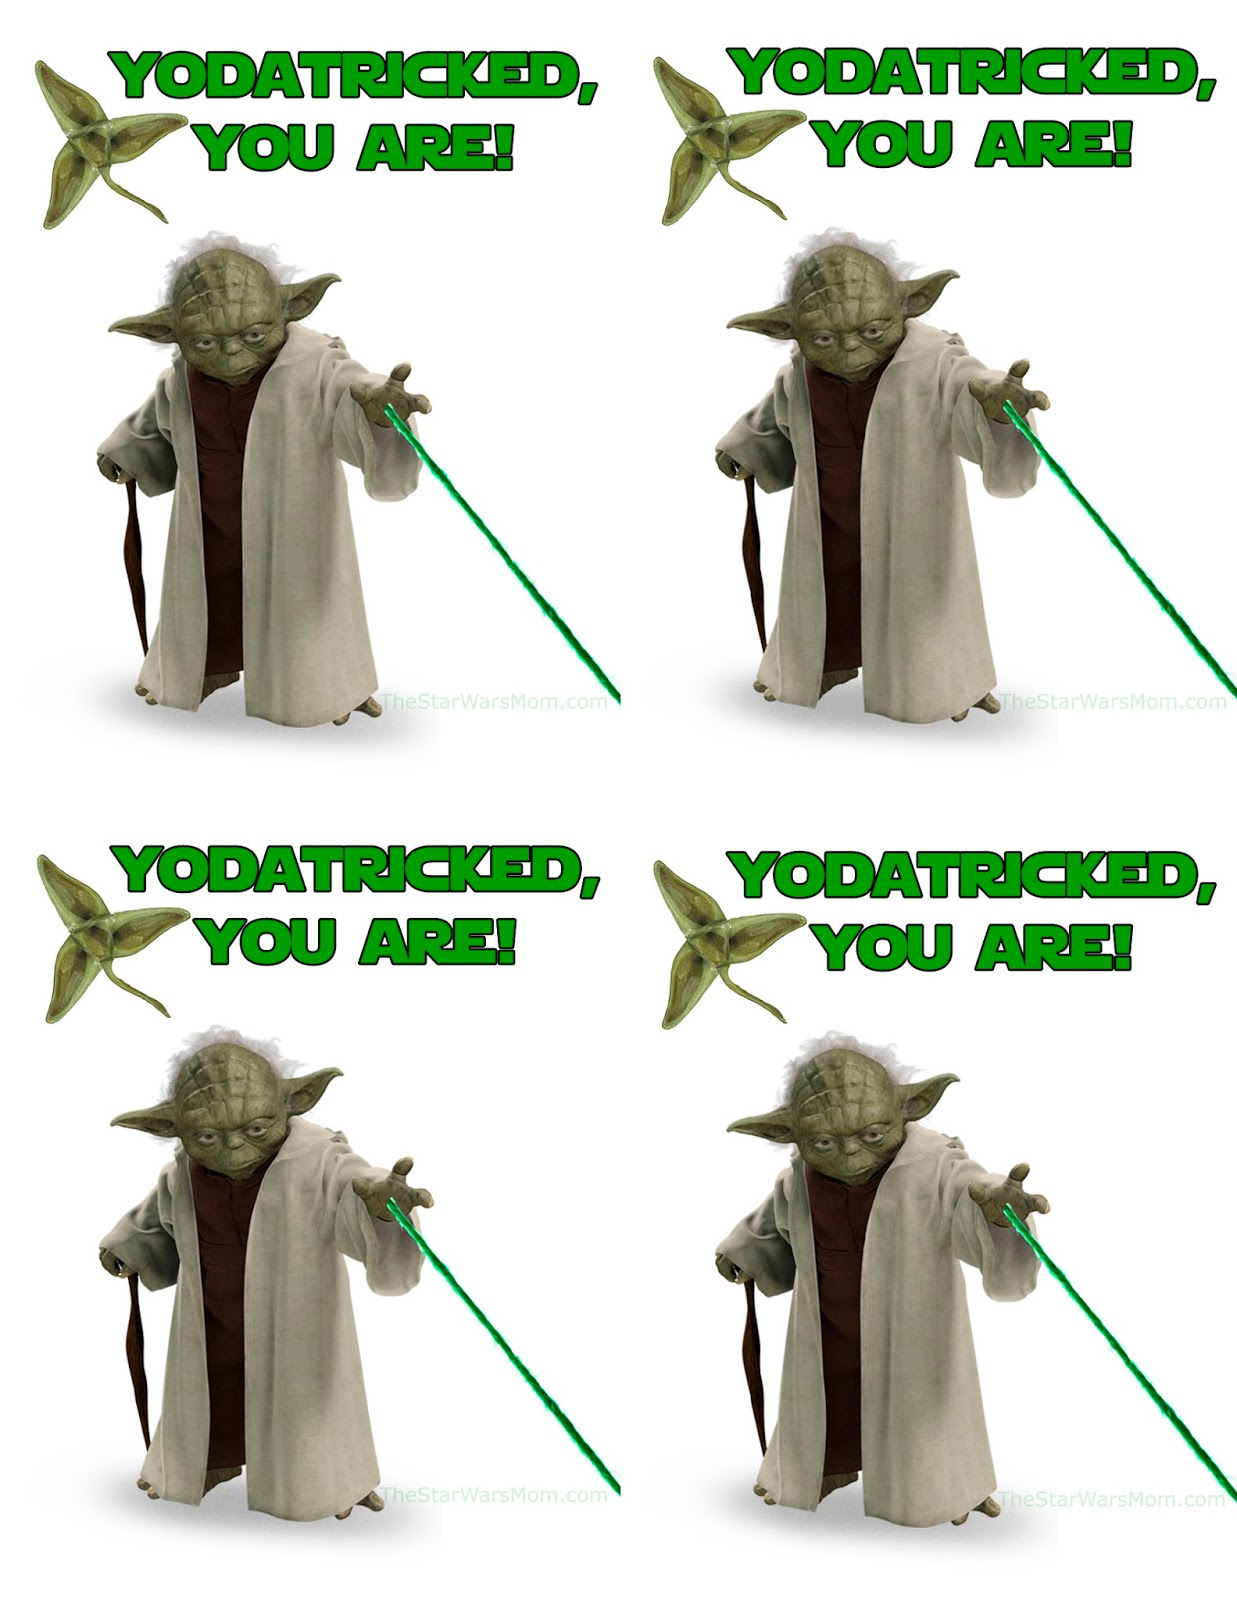 Yodatricked You Are Fun On St Yodatrick S Day Aka St